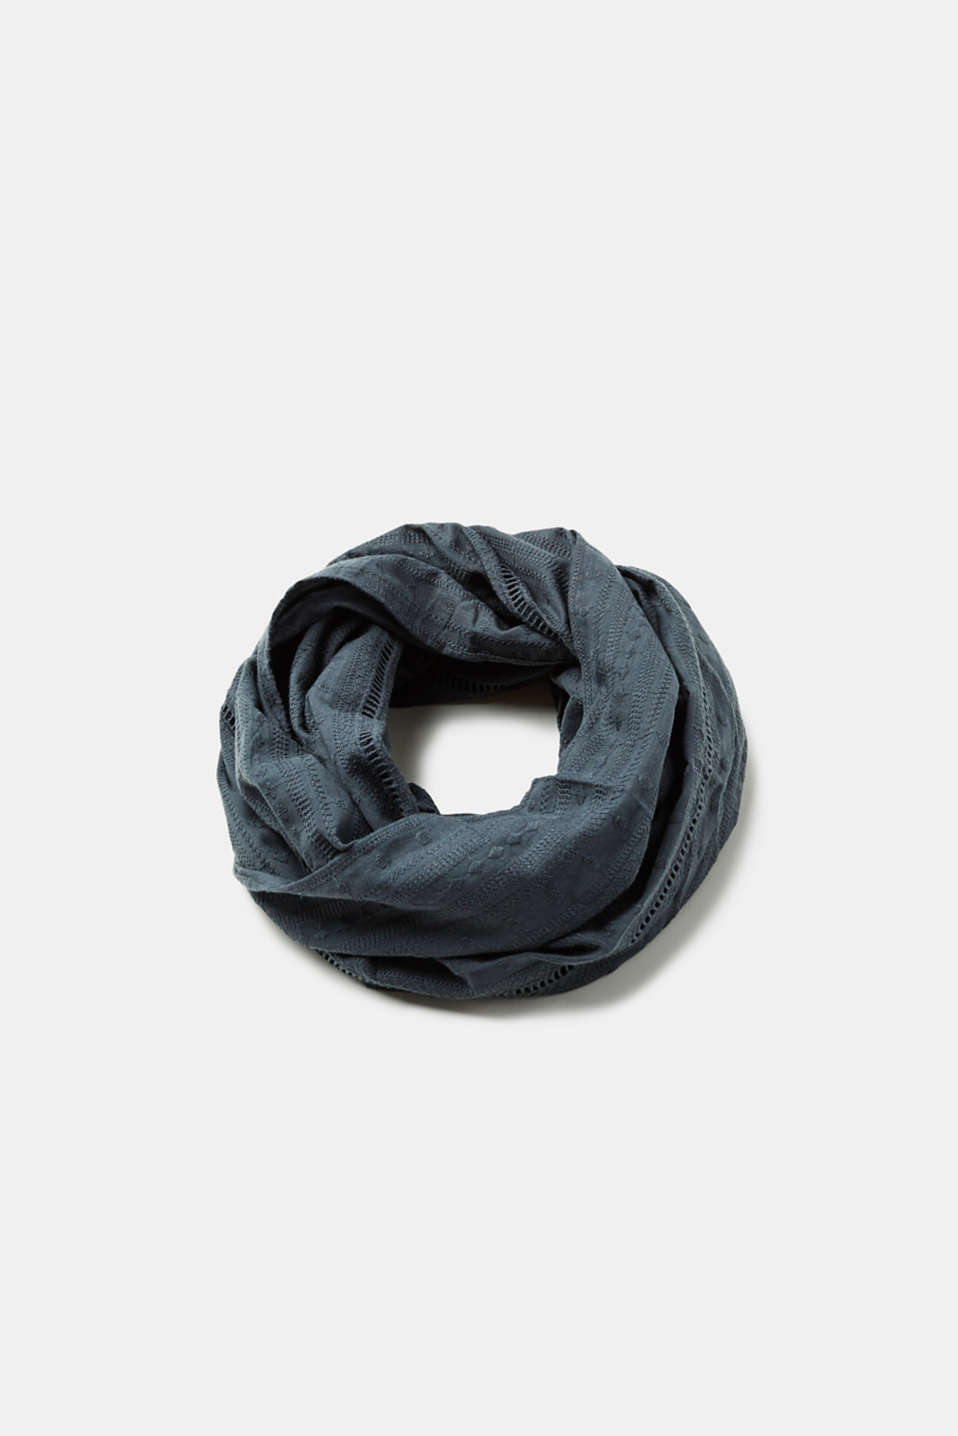 Esprit - Embroidered snood in 100% cotton